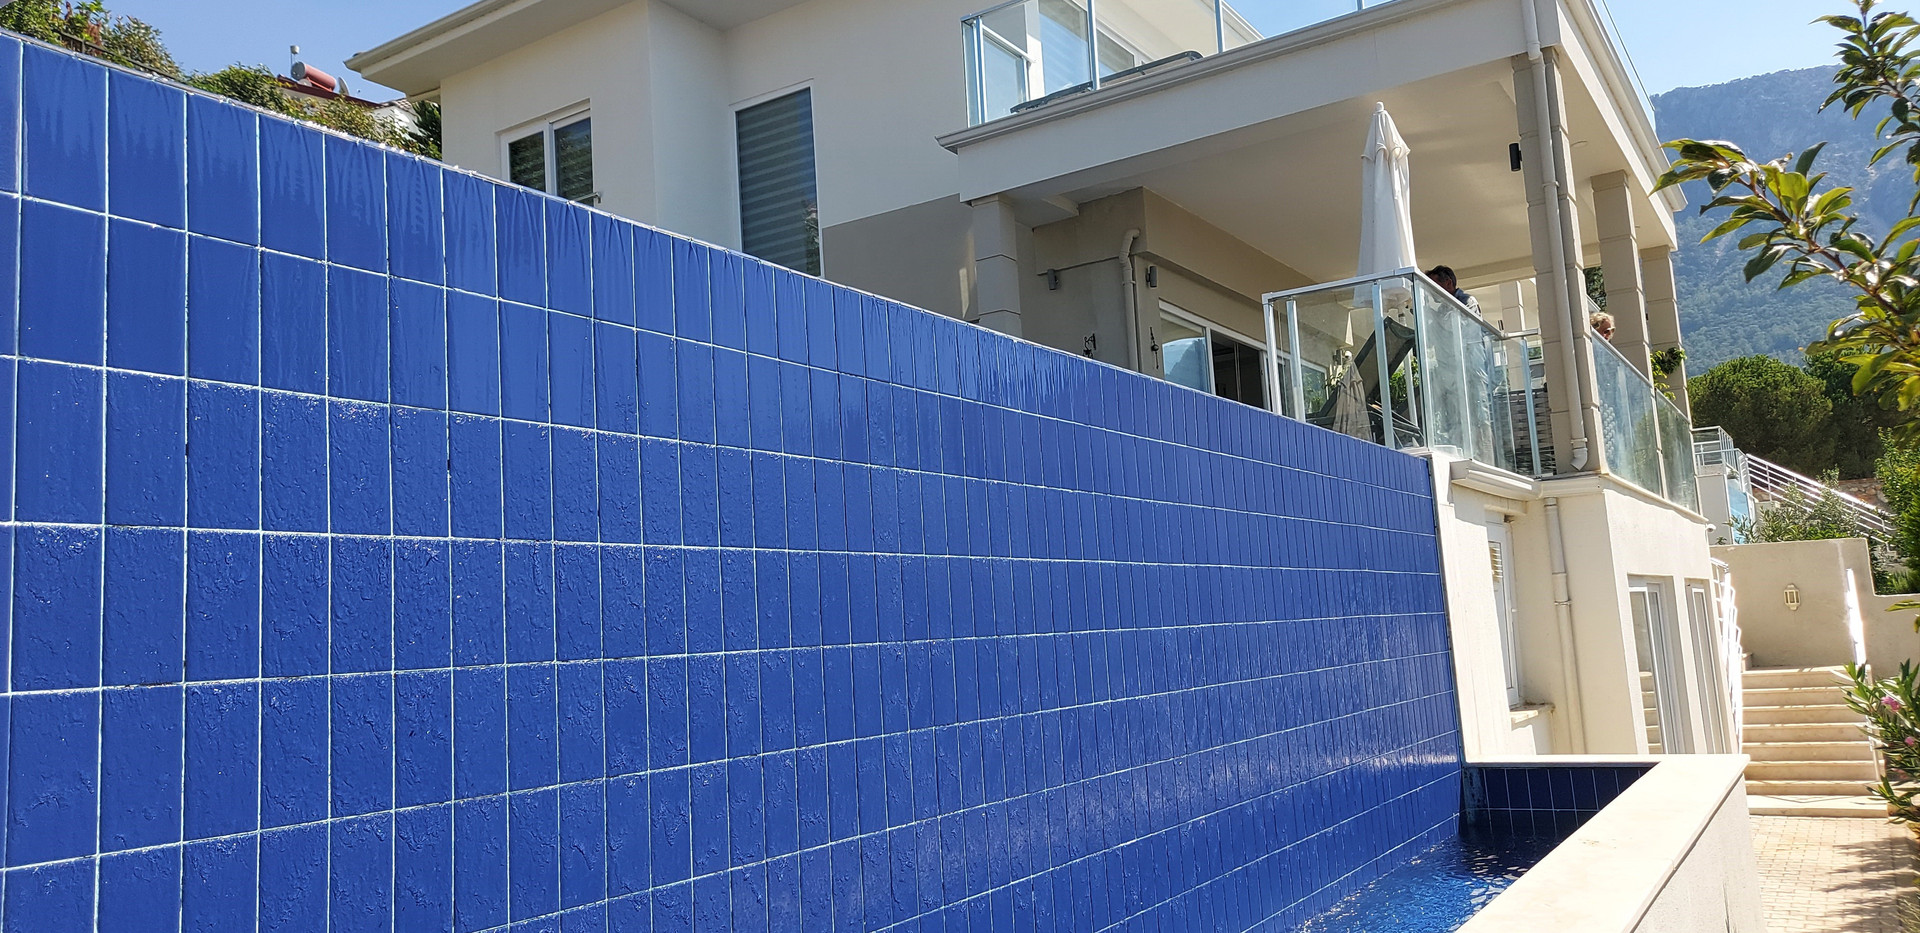 Waterfall Feature to Pool